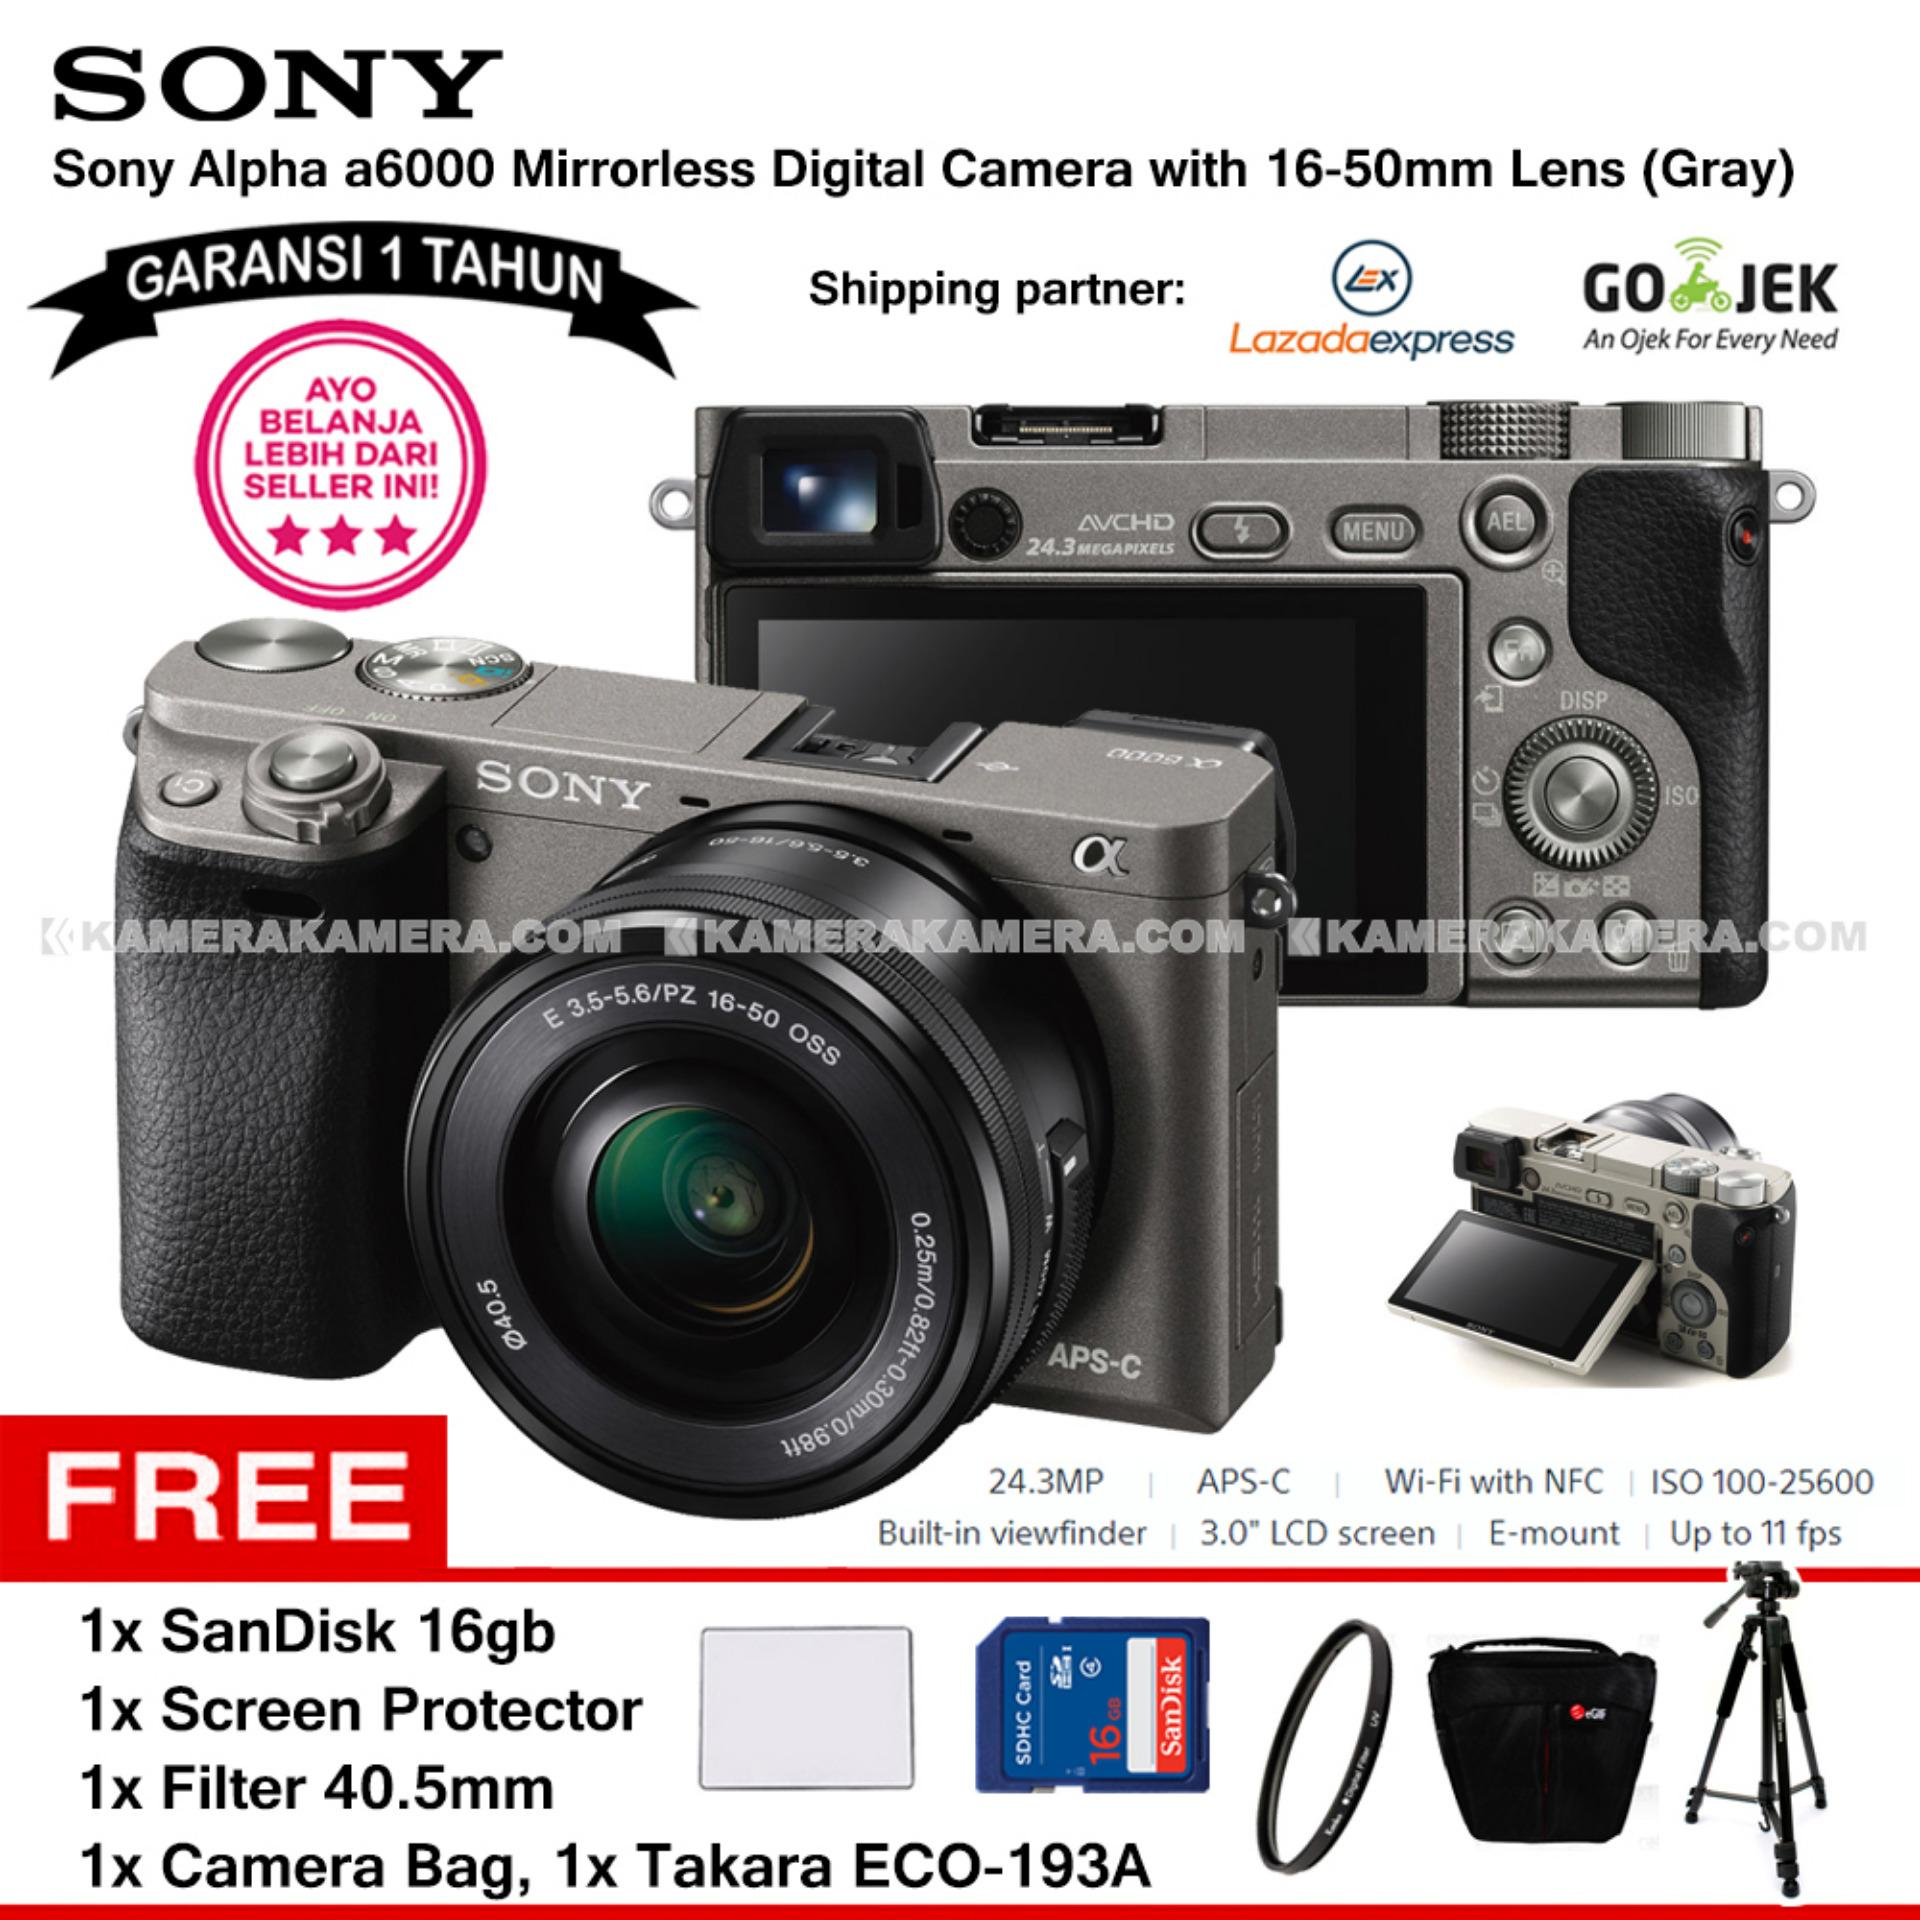 Jual Kamera Mirrorless Terbaru Canon Eos M10 Kit 15 45mm Paling  Se Bukalapak Sony Alpha 6000 Gray With 16 50mm Lens Camera A6000 Wifi 243mp